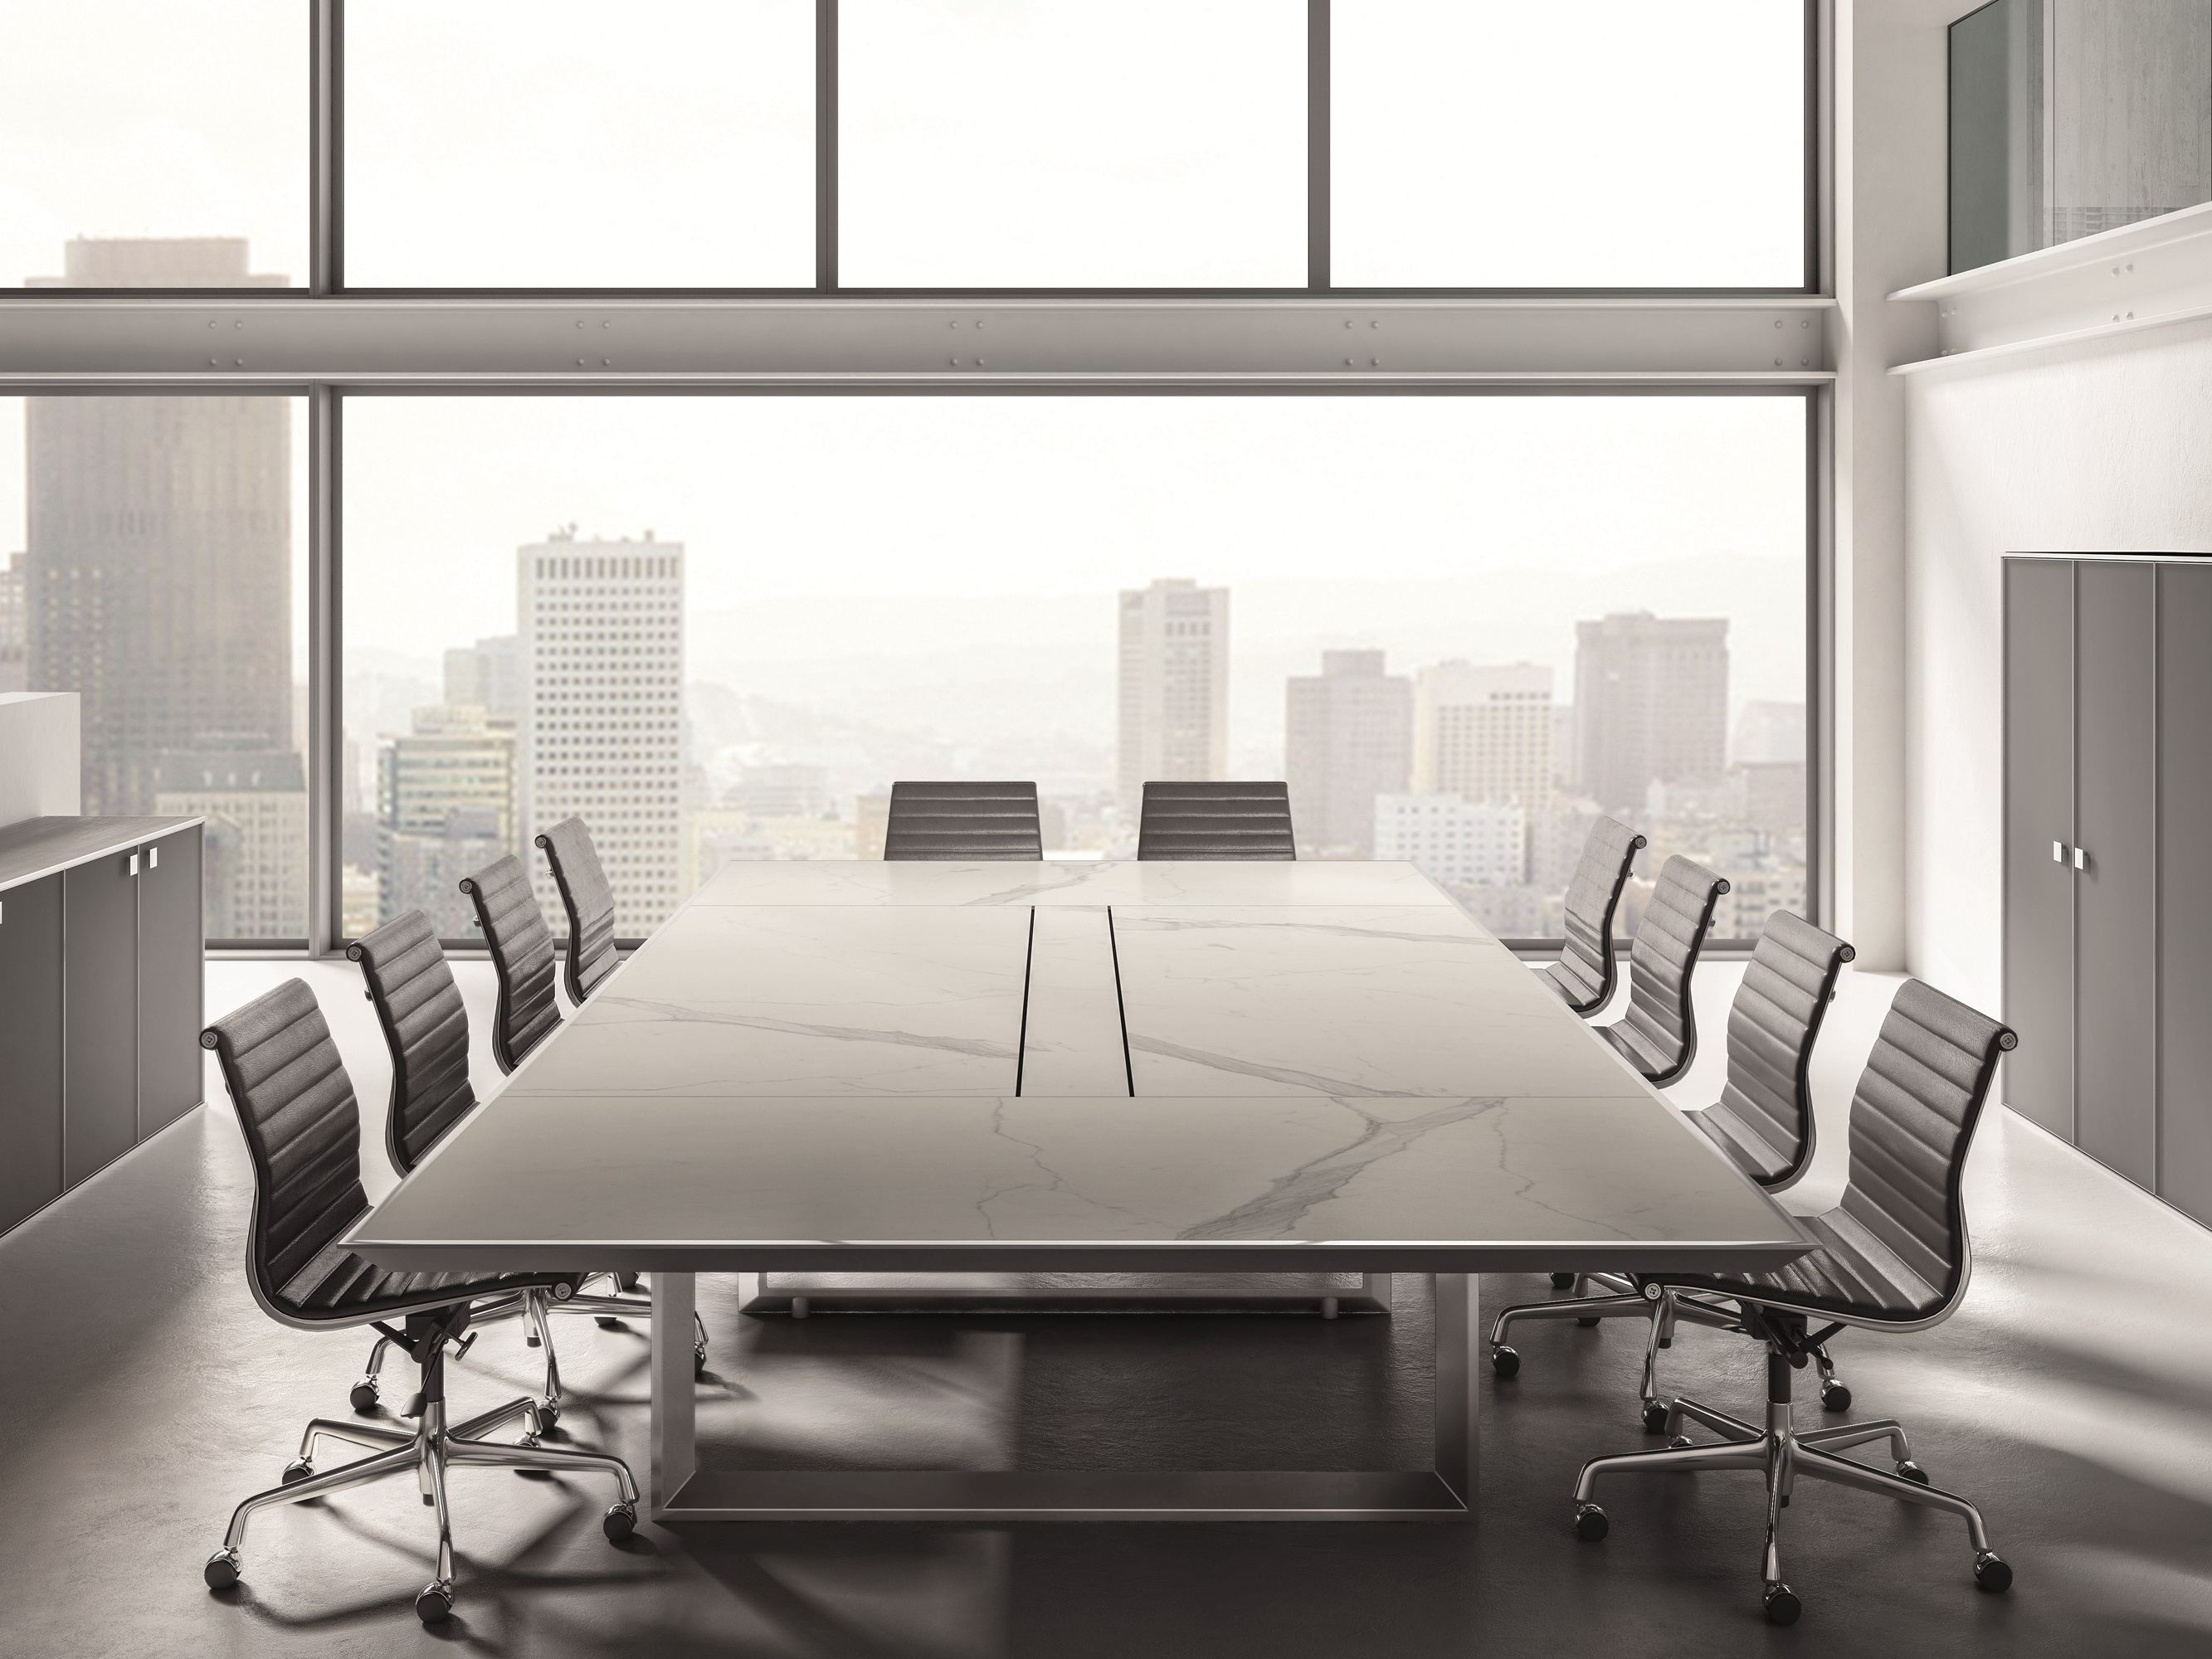 White marble meeting table combined with - White Marble Meeting Table Combined With 2